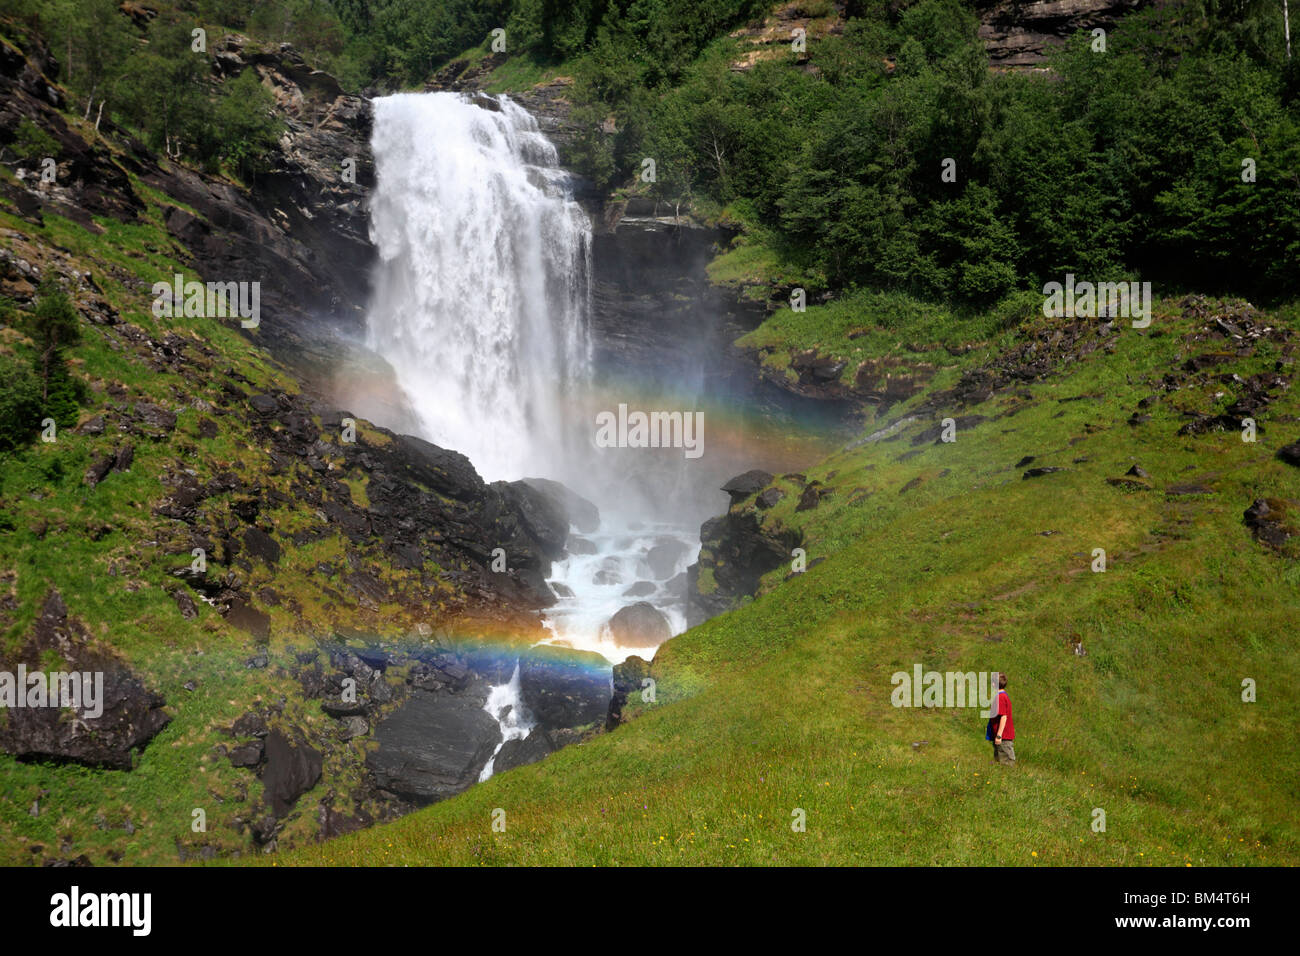 A young child gazes up in fascination at a double rainbow below a waterfall near Morkri, Sognefjord, Norway - Stock Image